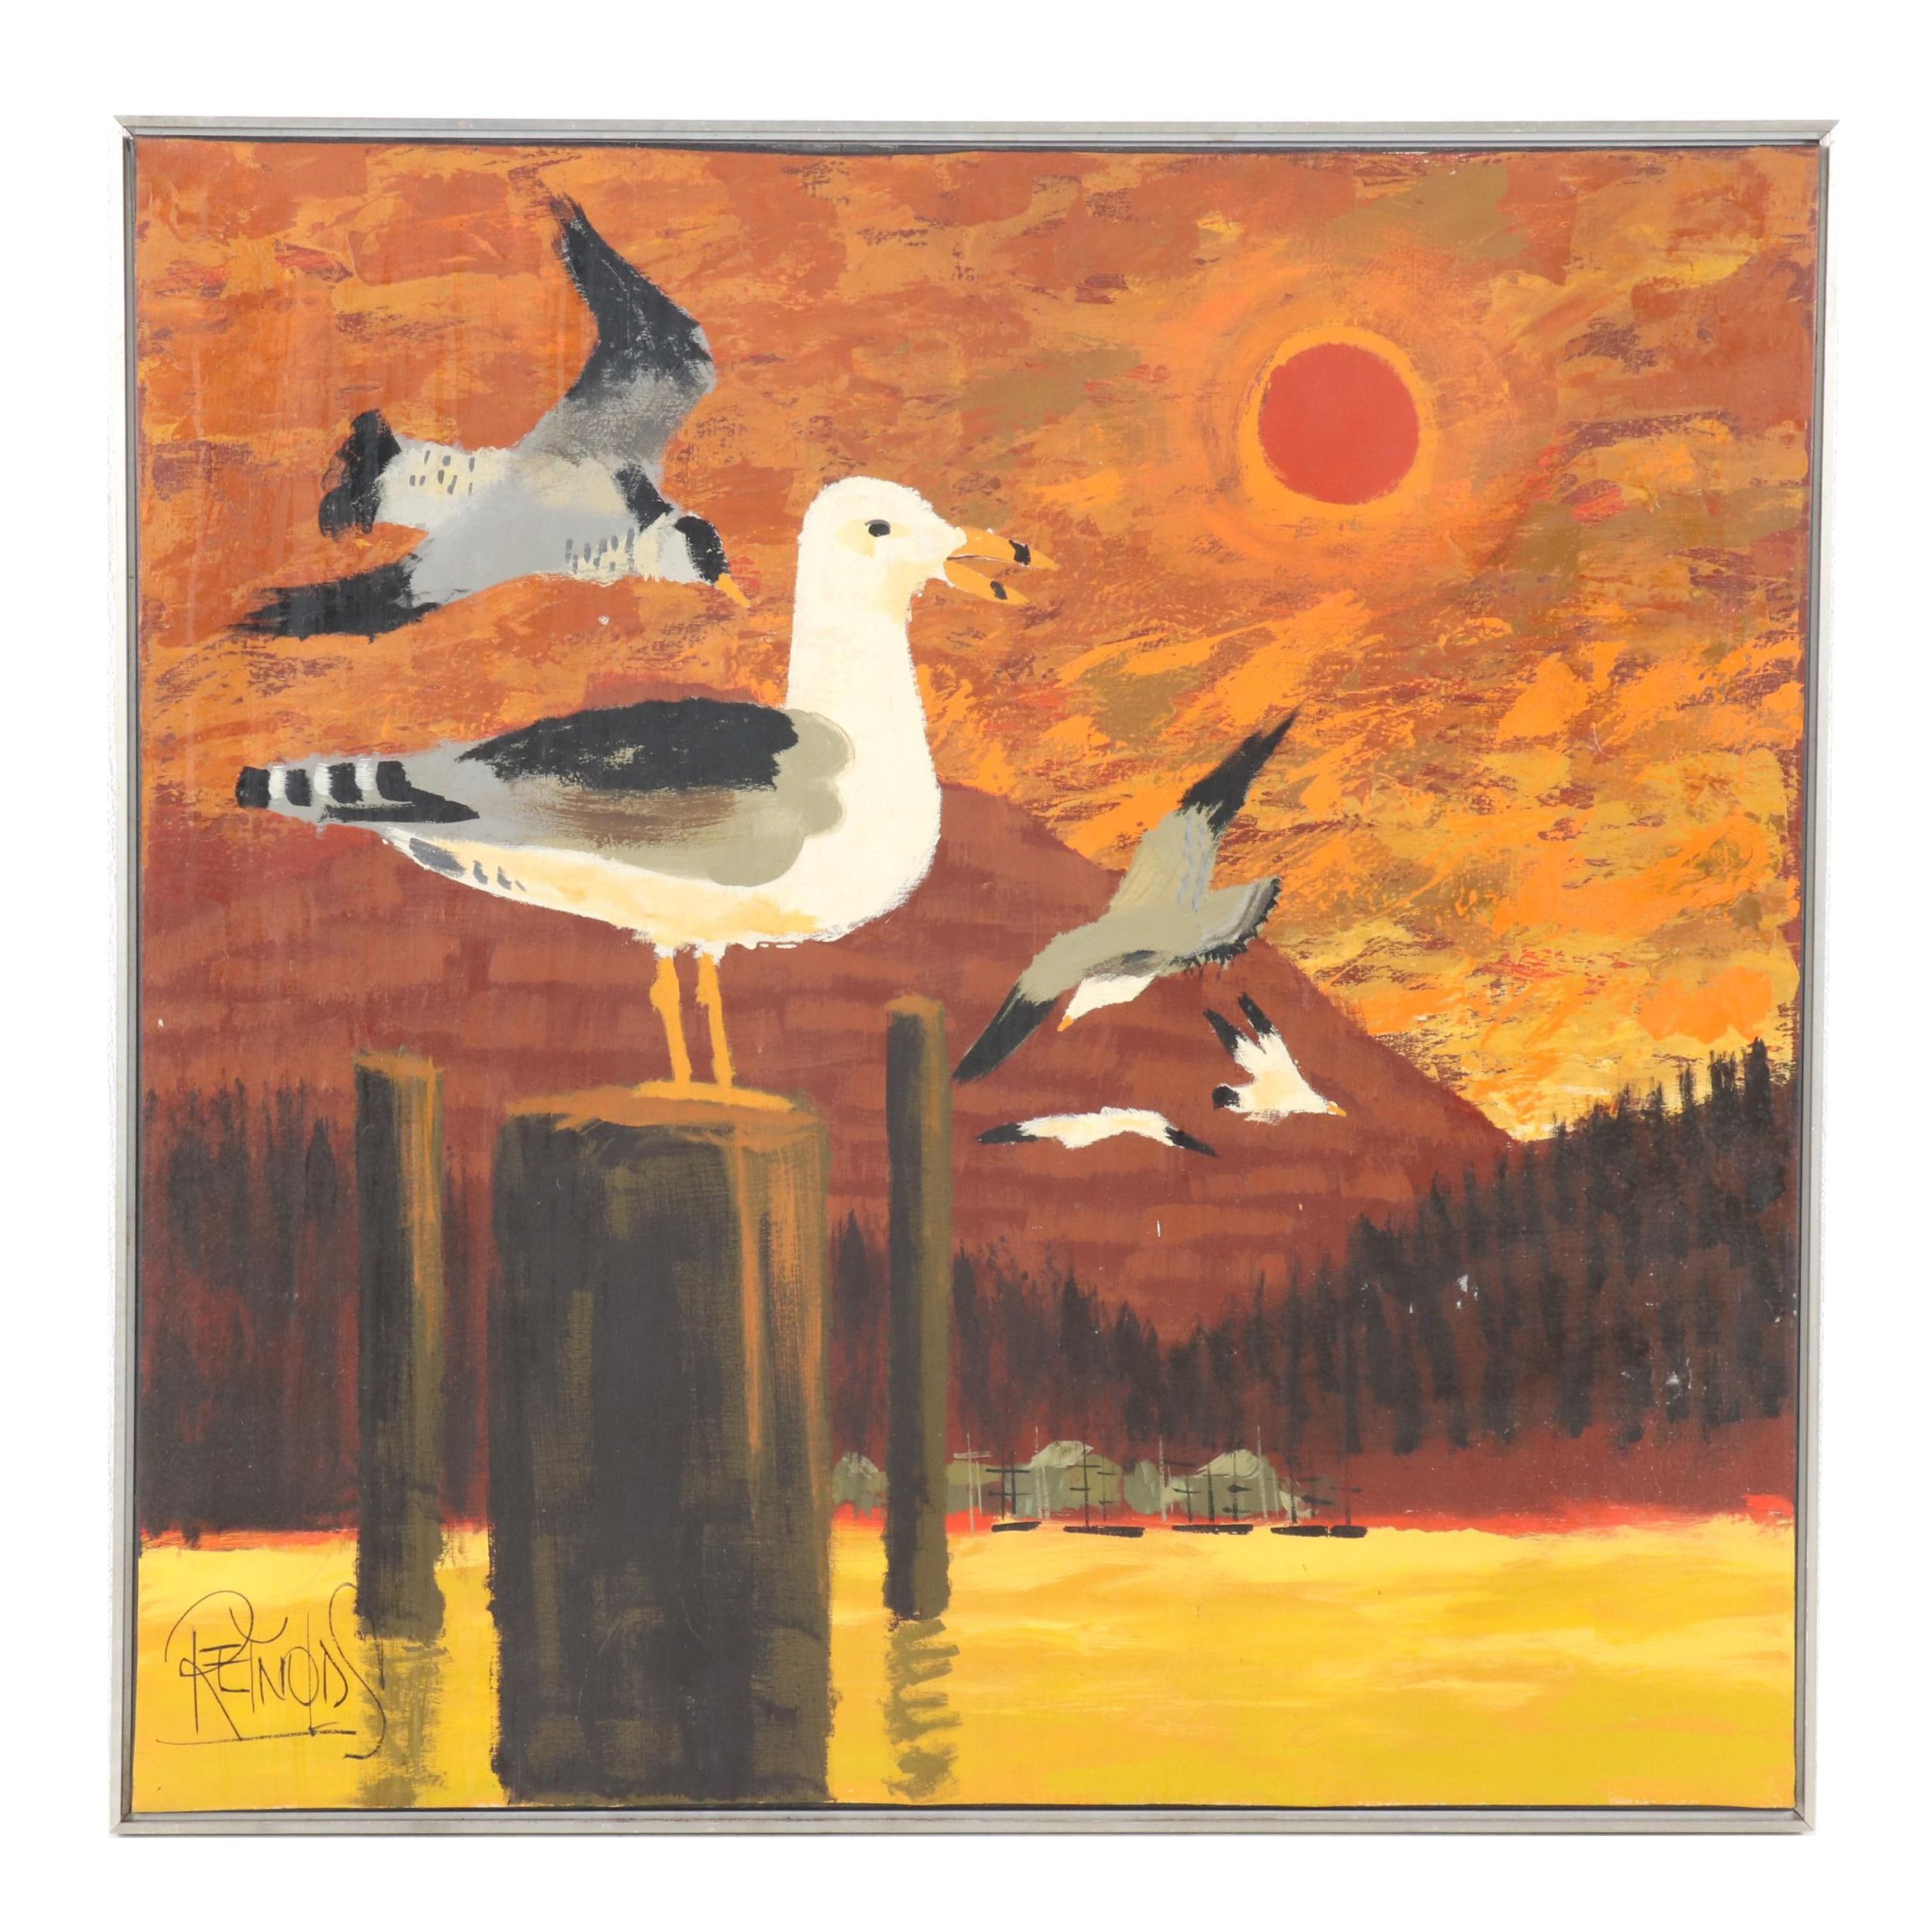 Reynolds Abstract Oil Painting of Seagulls